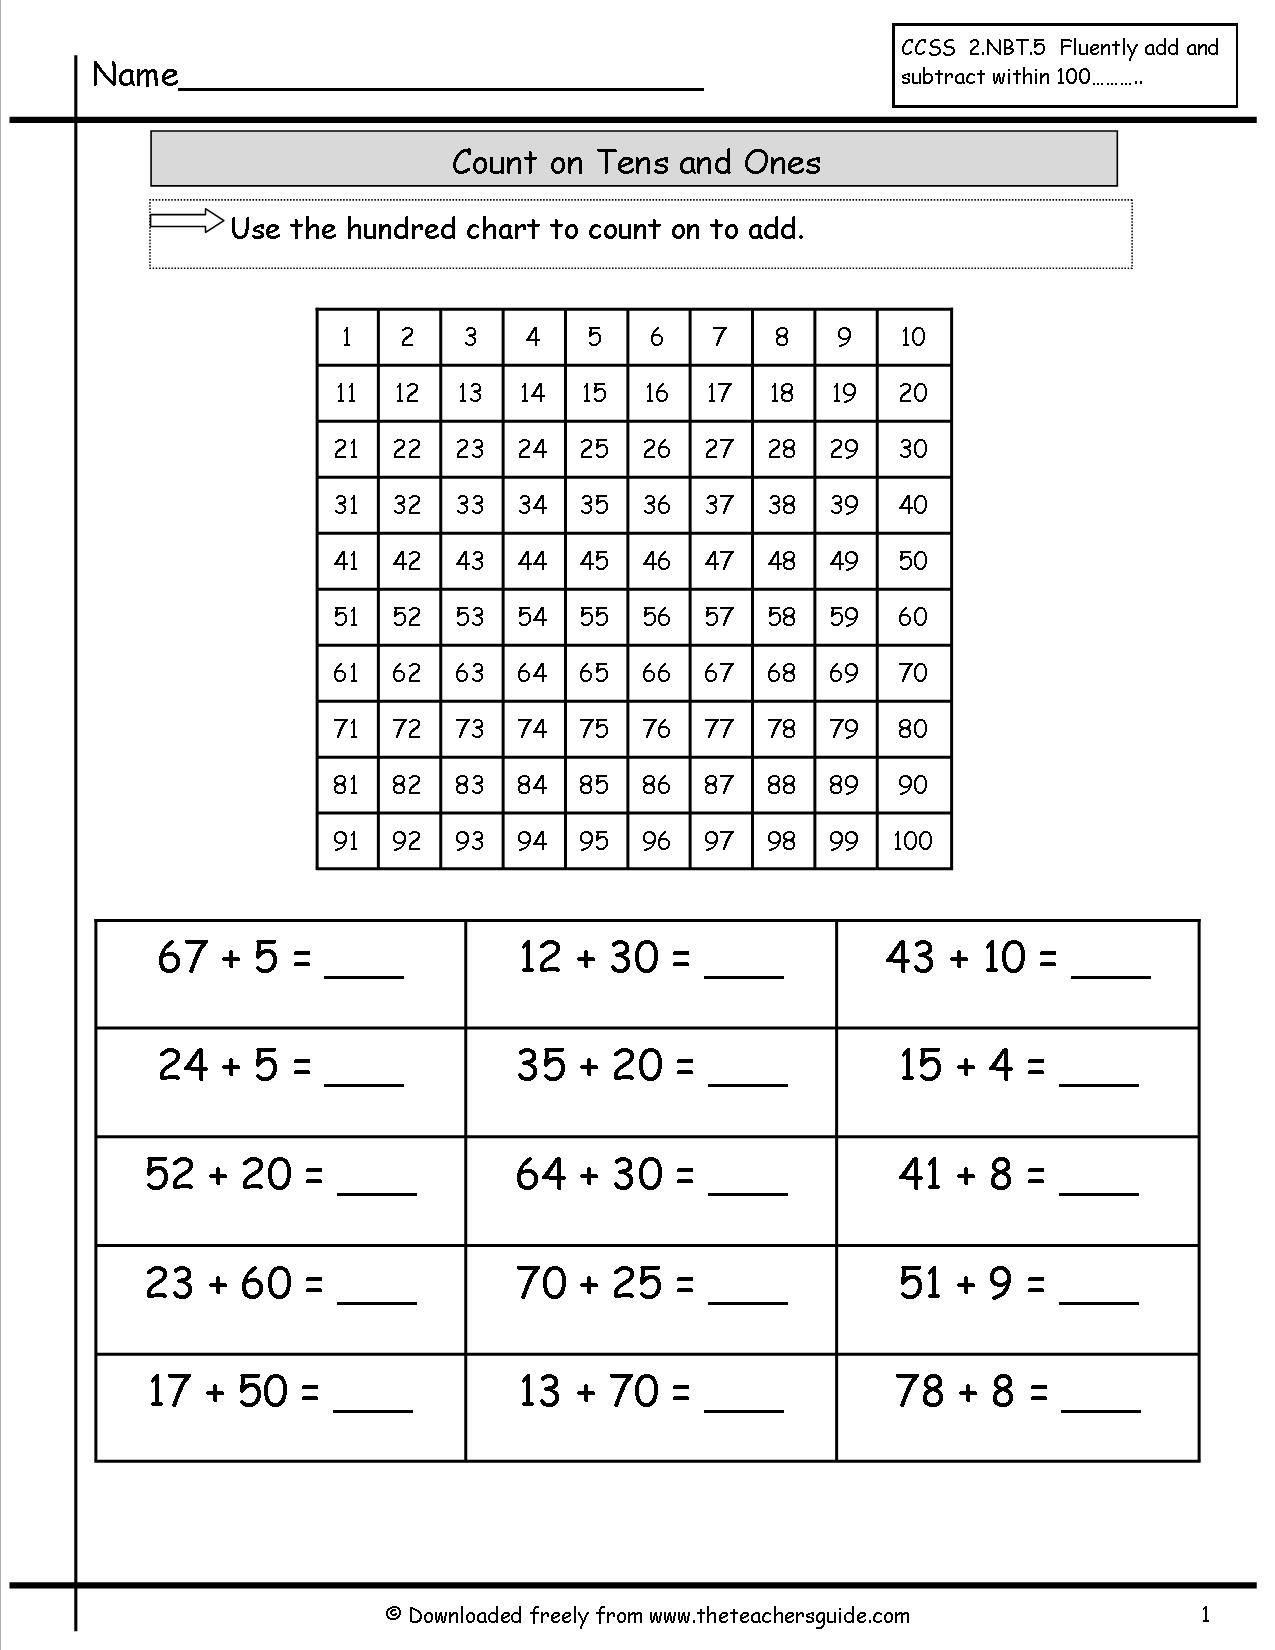 Counting On Ones And Tens Worksheet Math Addition Worksheets Tens And Ones Worksheets Tens And Ones Math Addition Worksheets [ 1650 x 1275 Pixel ]